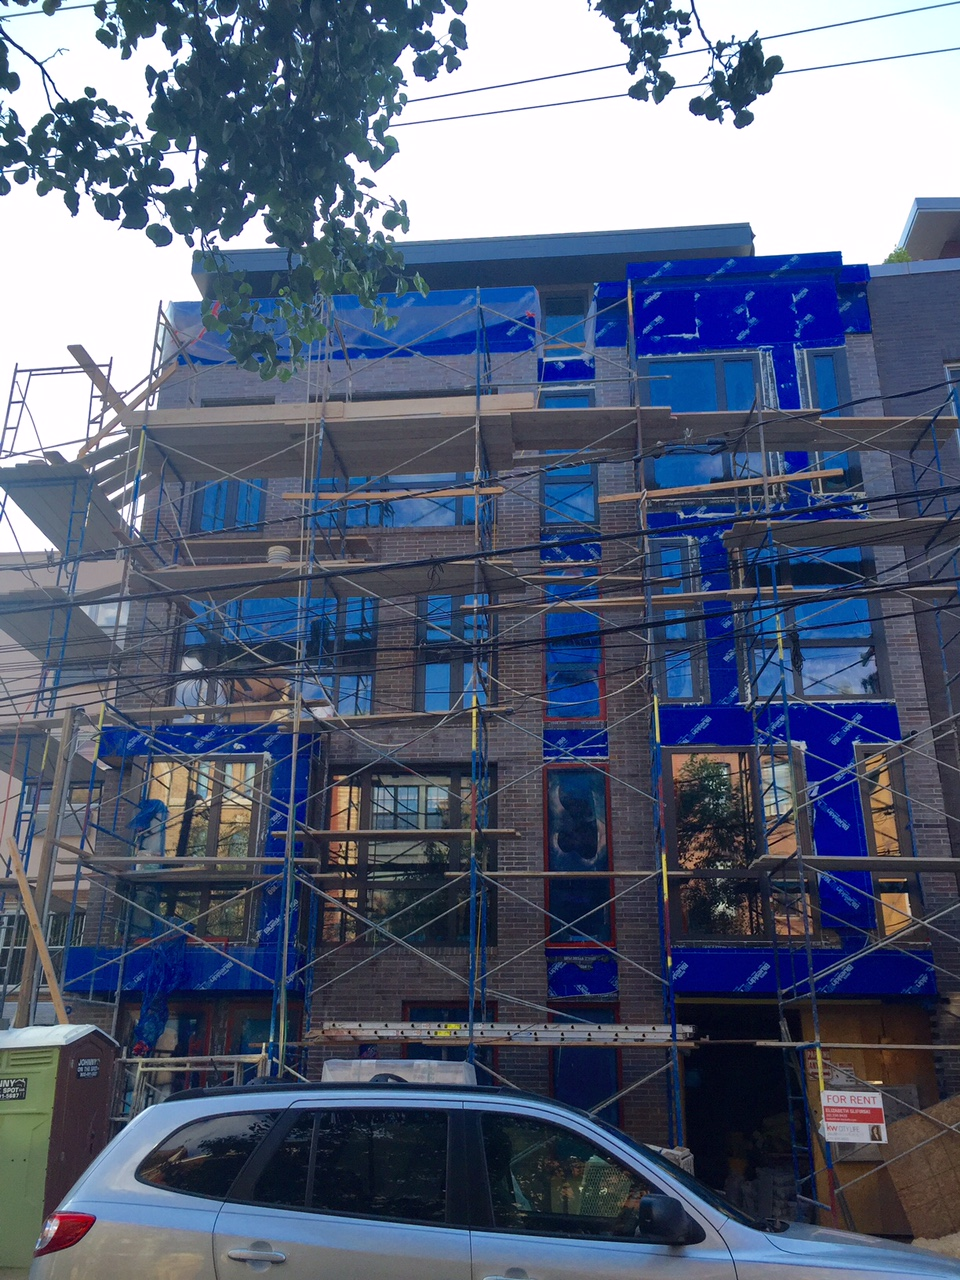 6/9/15 Facade almost all bricked up.